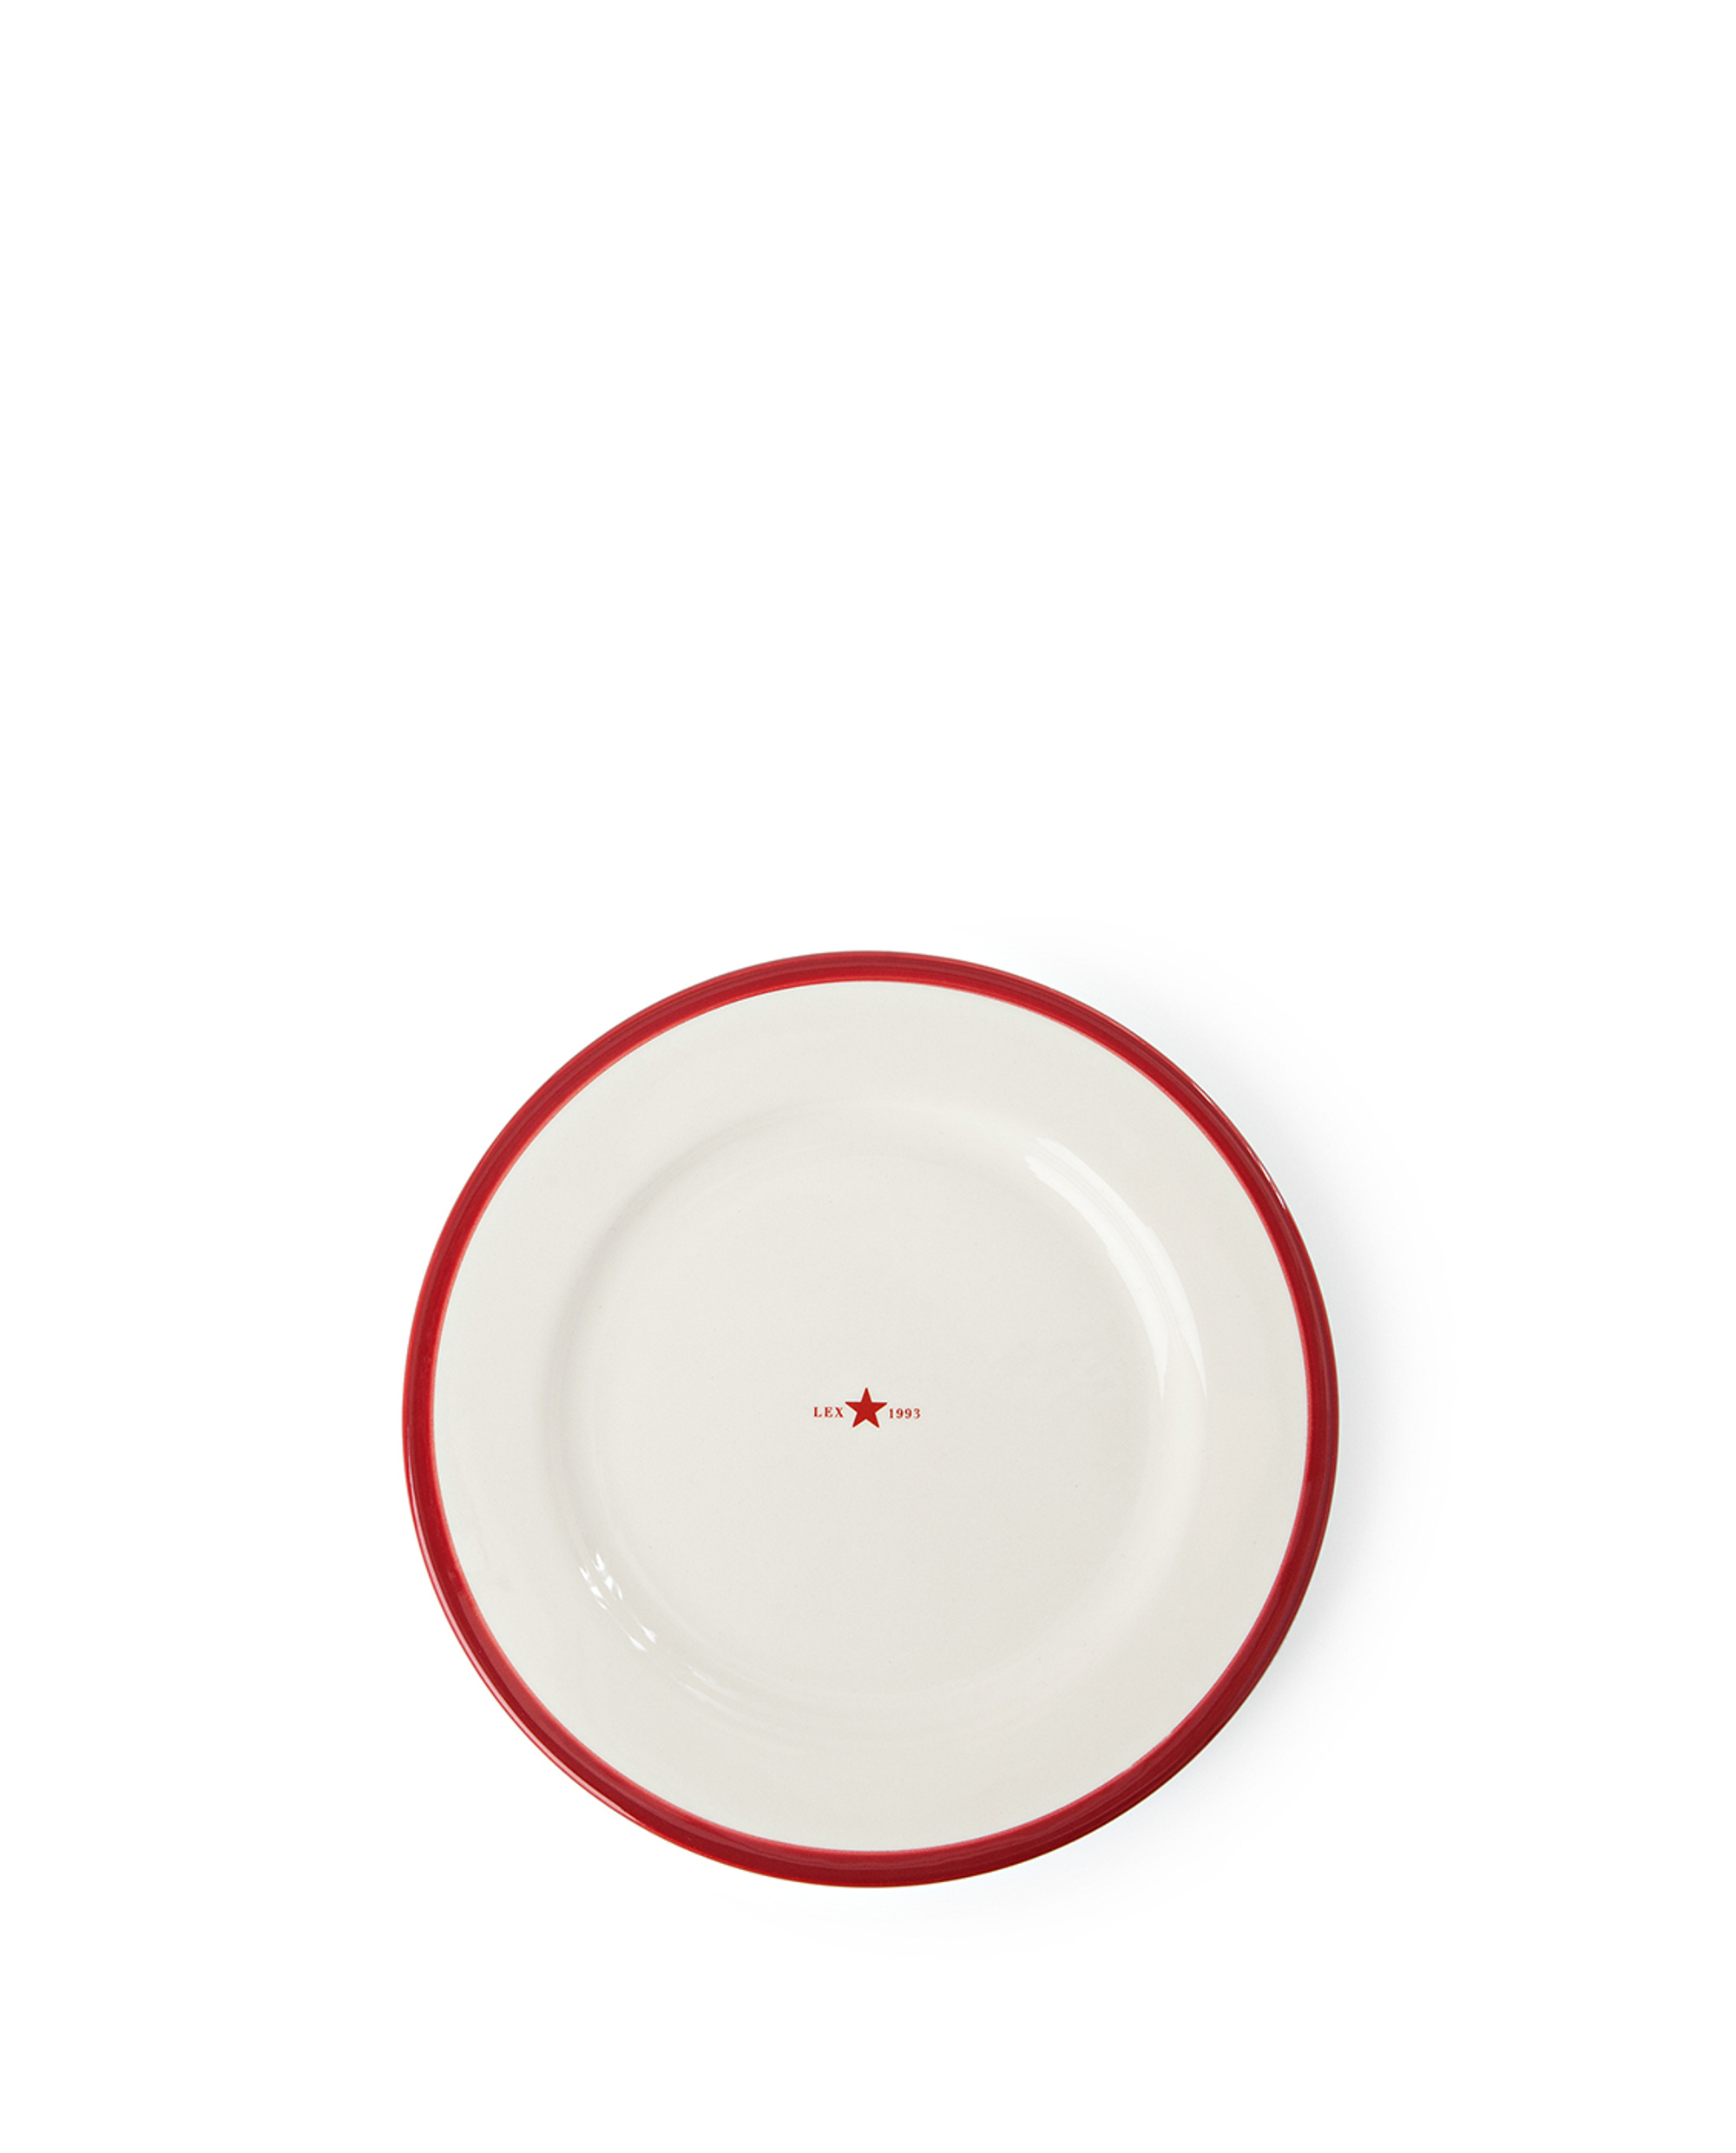 Icons Dessert Plate 22 cm, Red